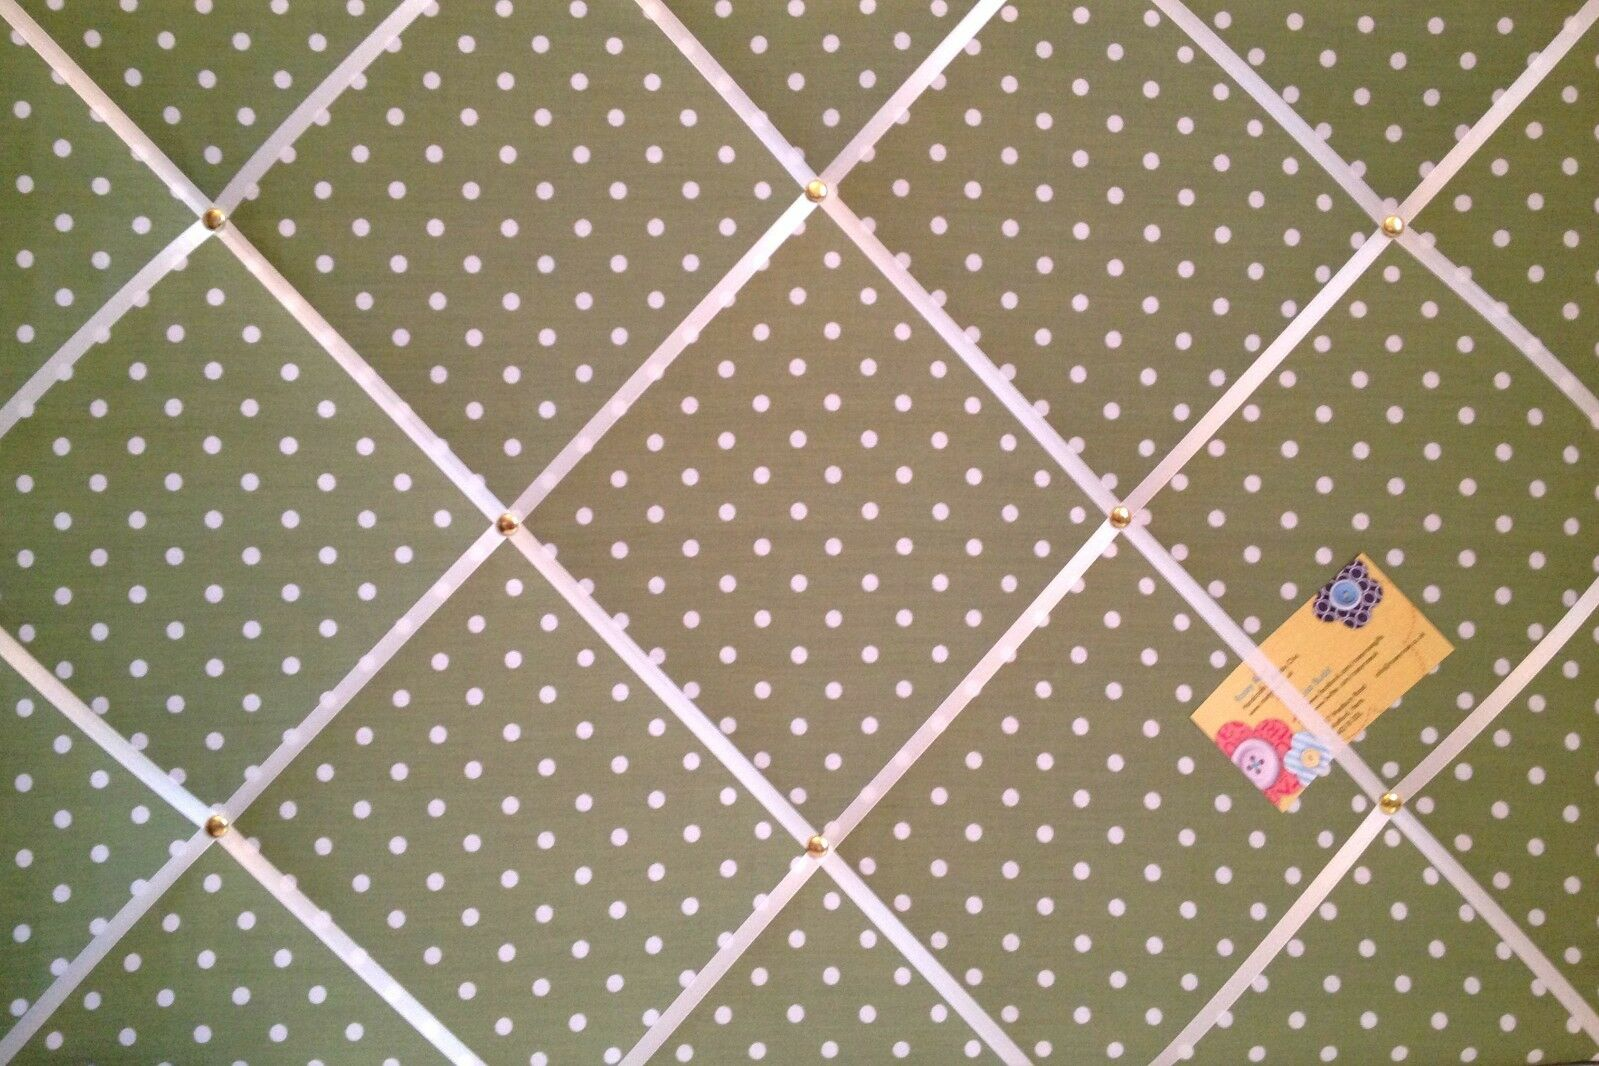 Grün & Weiß Polka Dot Hand Crafted Fabric Notice Memory Pin Memo Board